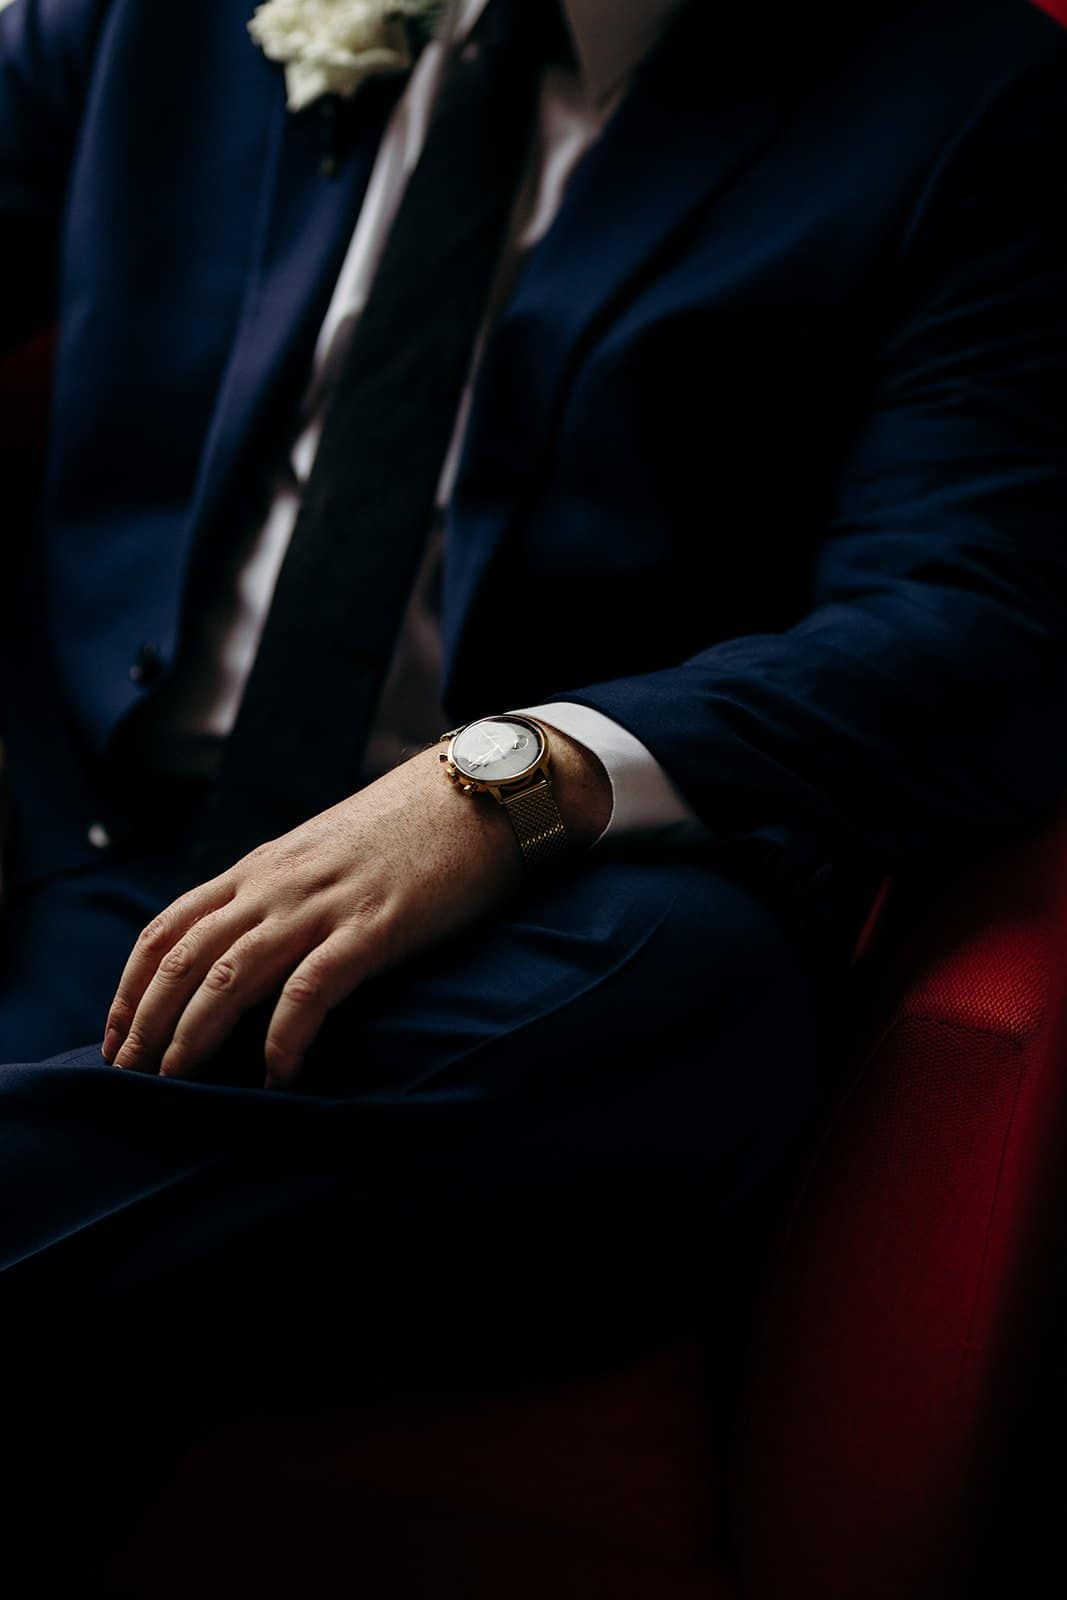 focused shot of watch on a man